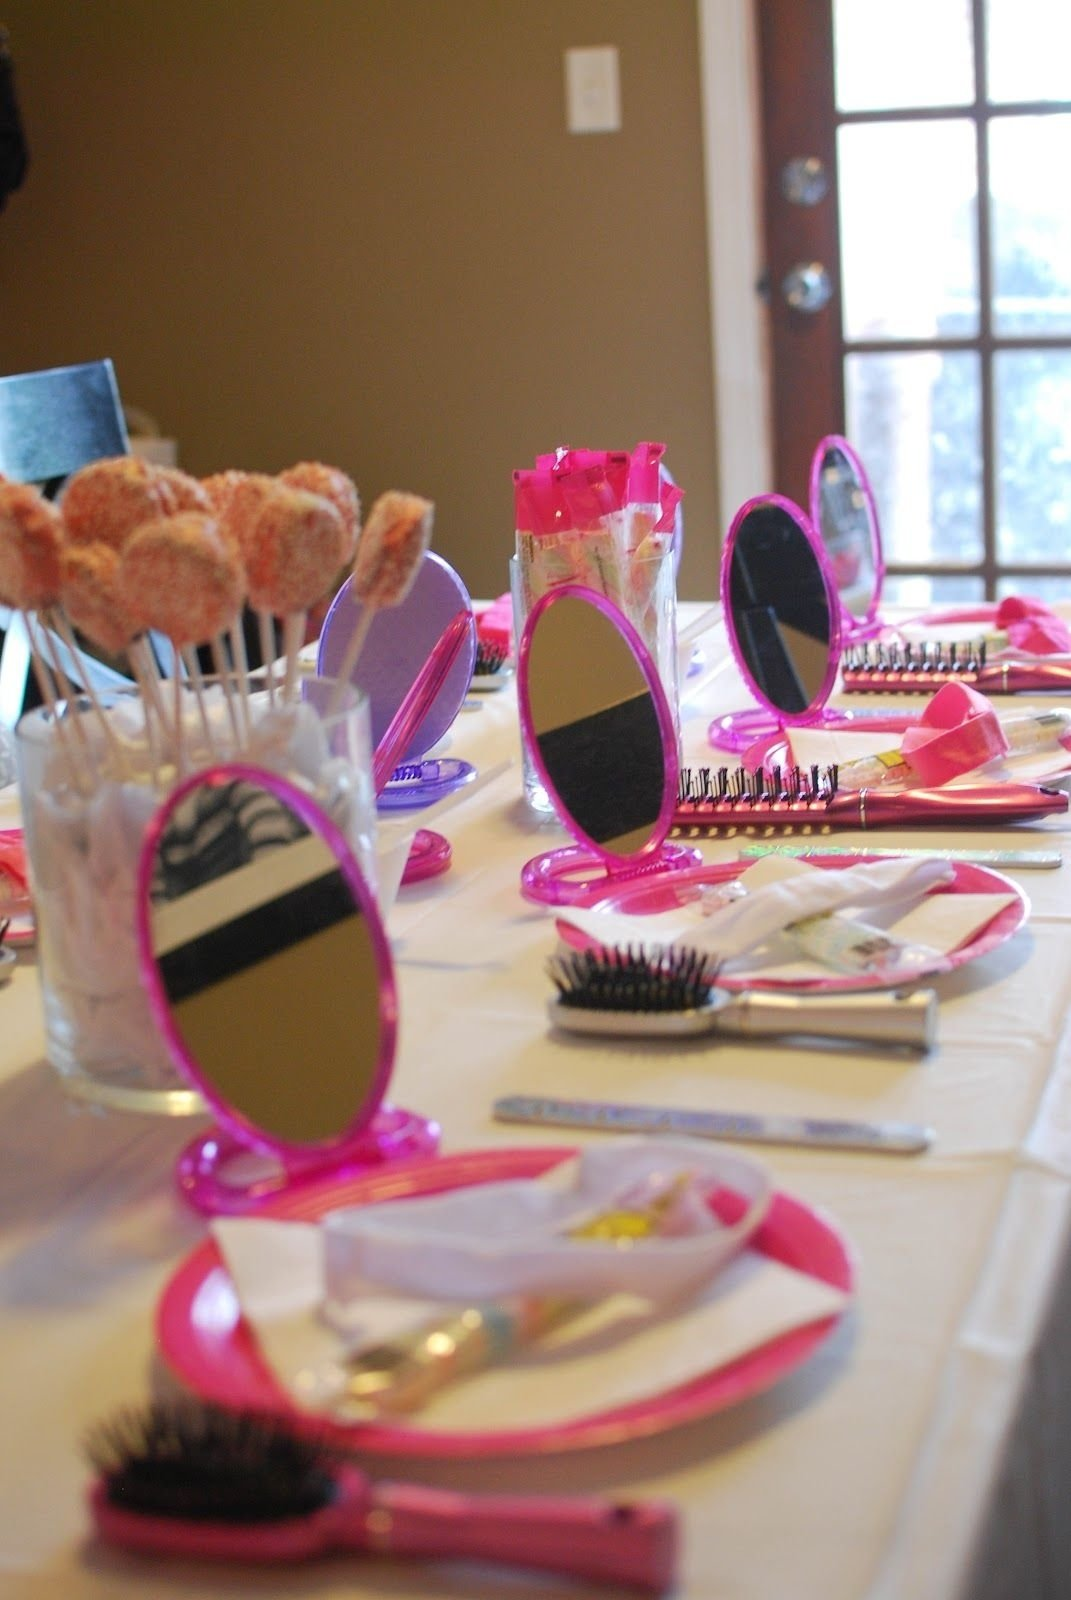 10 Stunning Birthday Ideas For Little Girls spa party ideas for 8 yr old girls remember this for the twins via 26 2021